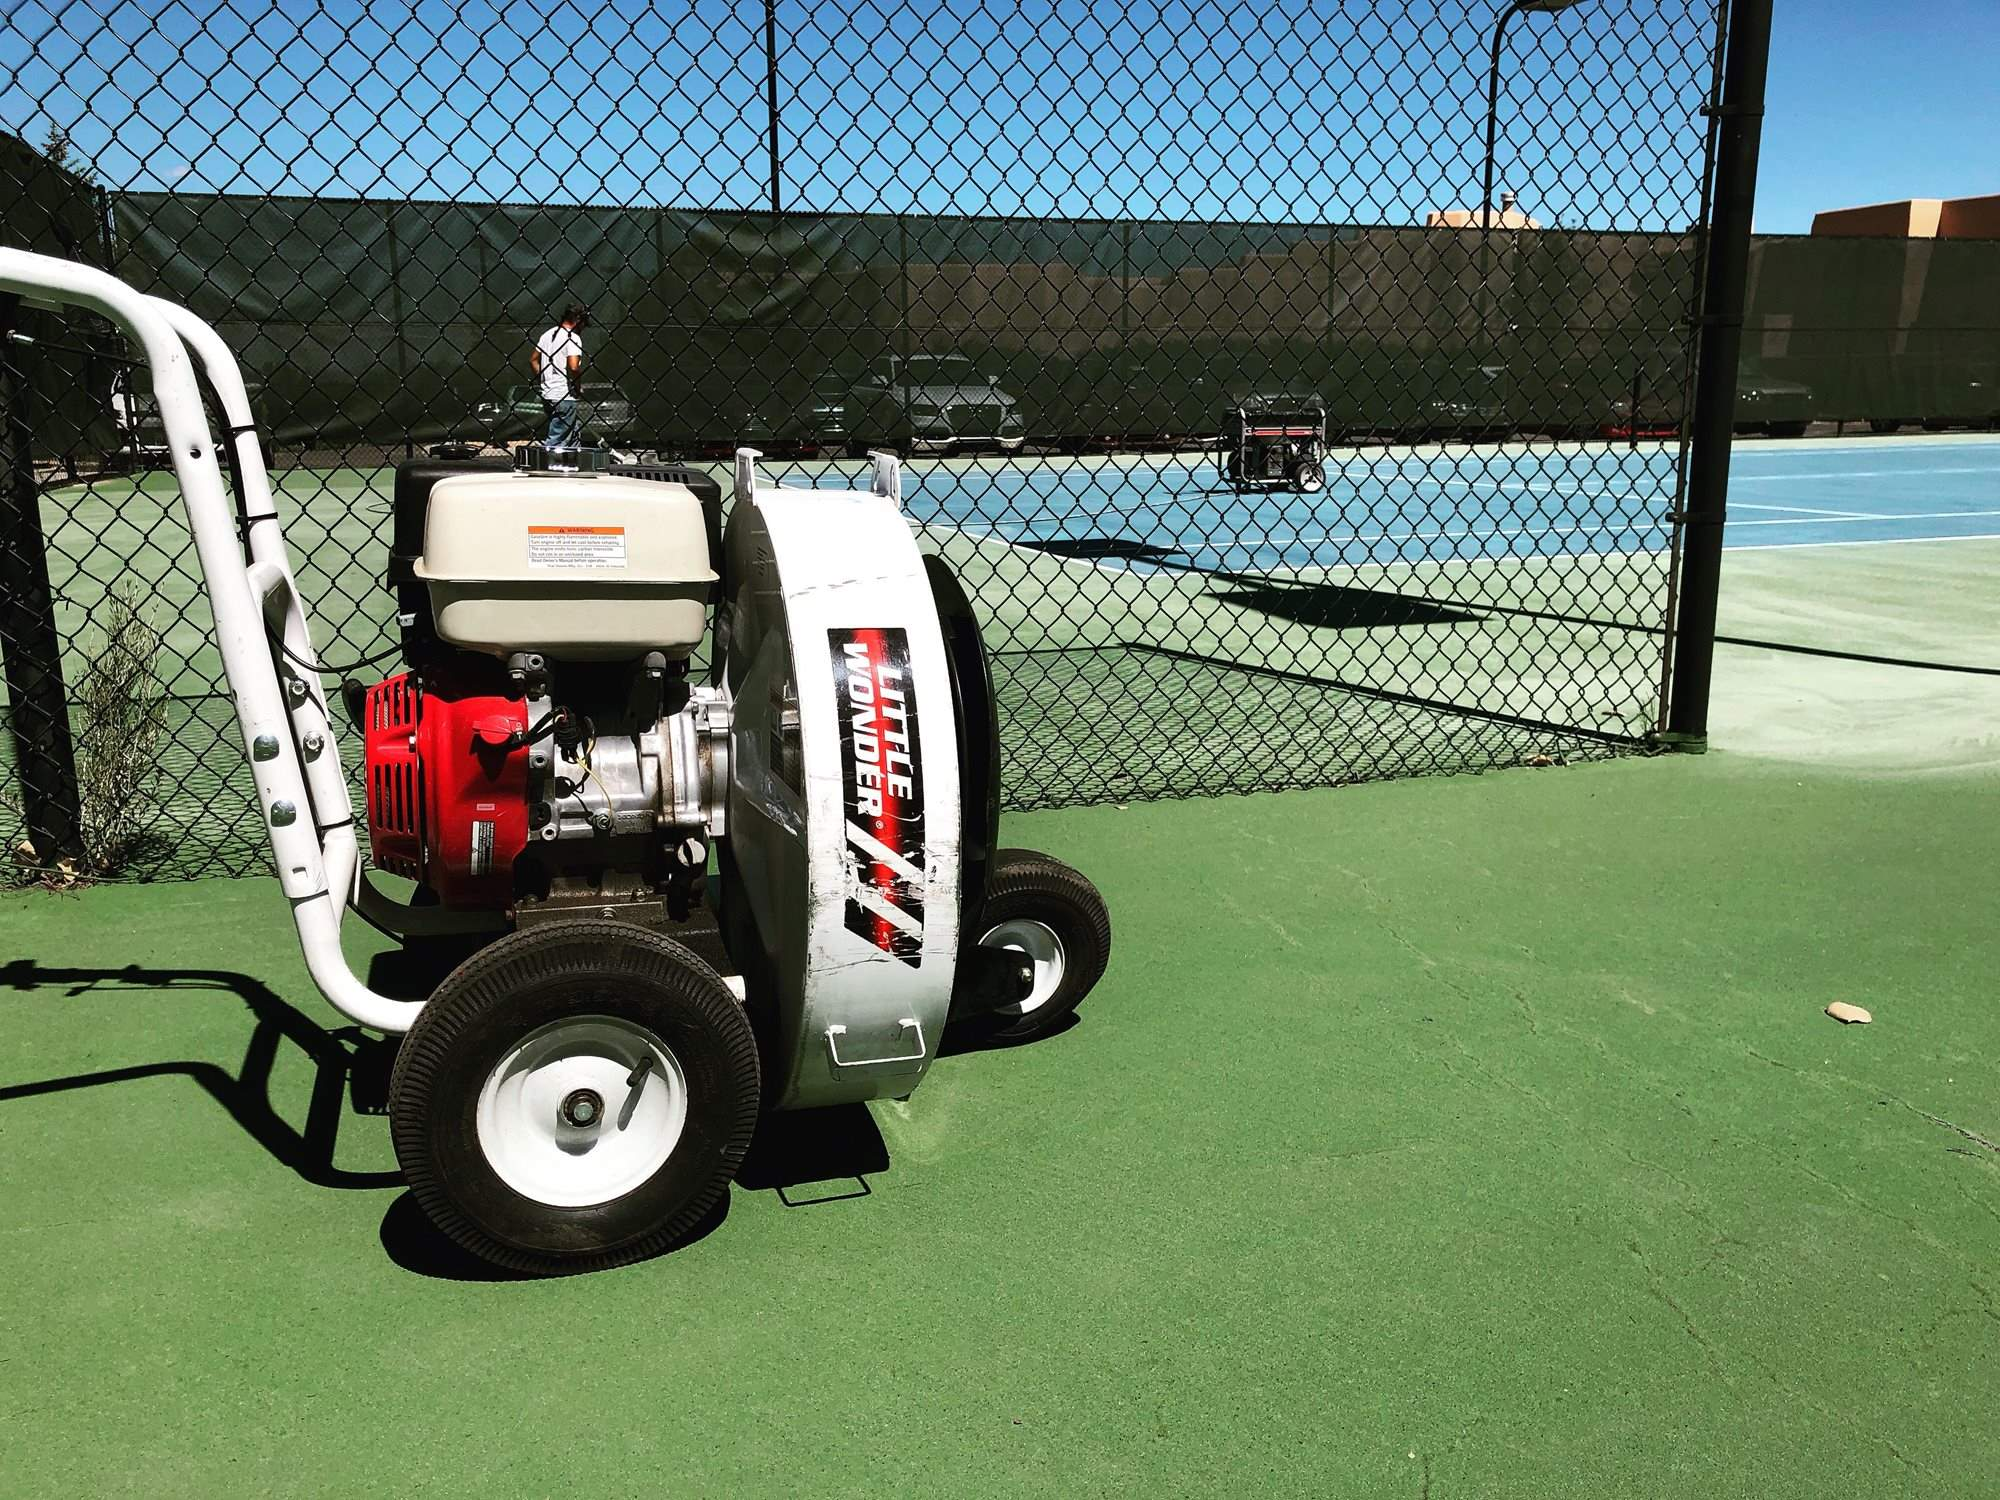 Resurfacing Courts